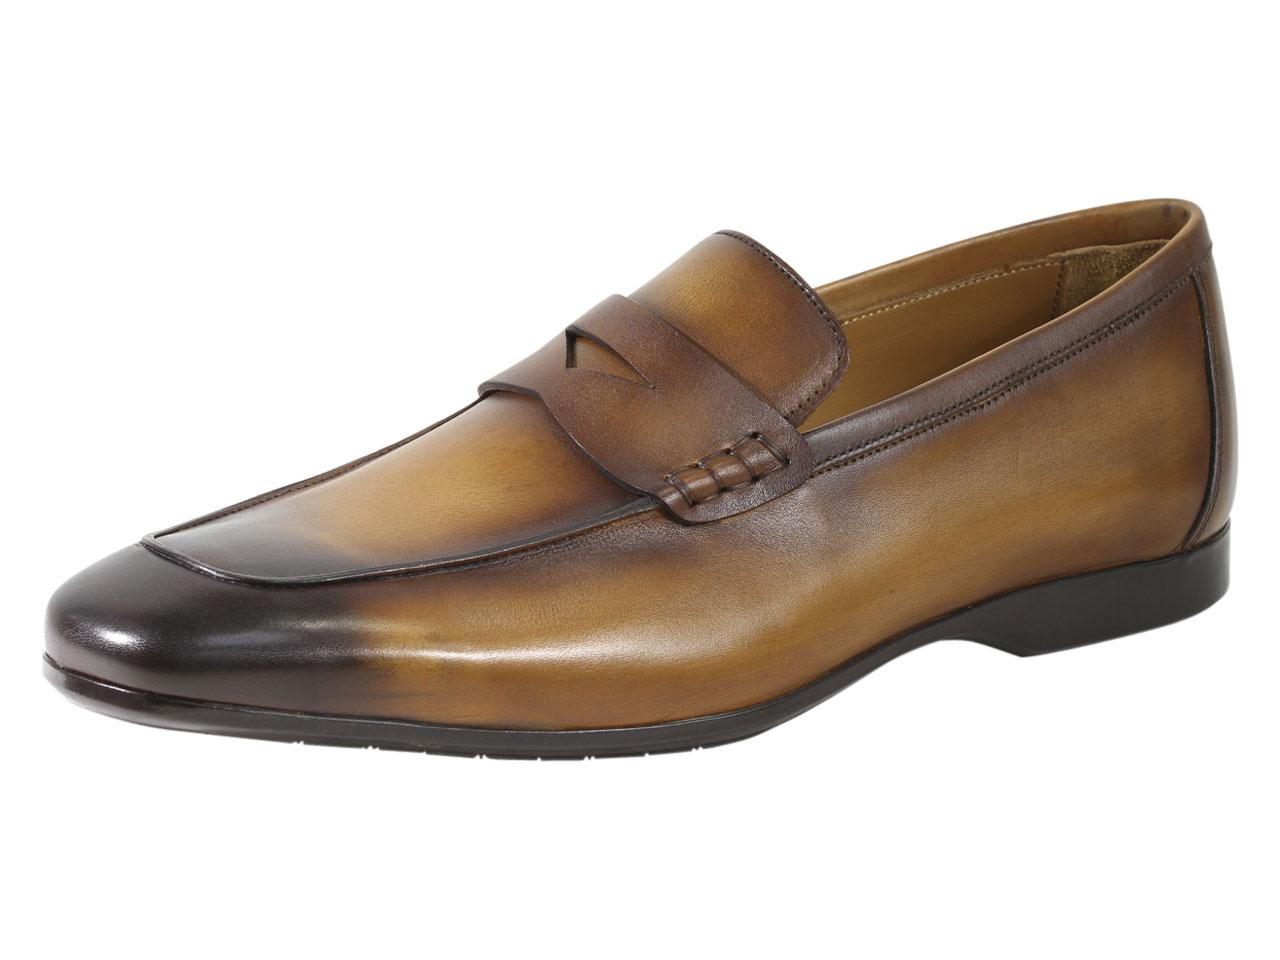 Image of Bruno Magli Men's Margot Penny Loafers Shoes - Brown - 9 D(M) US